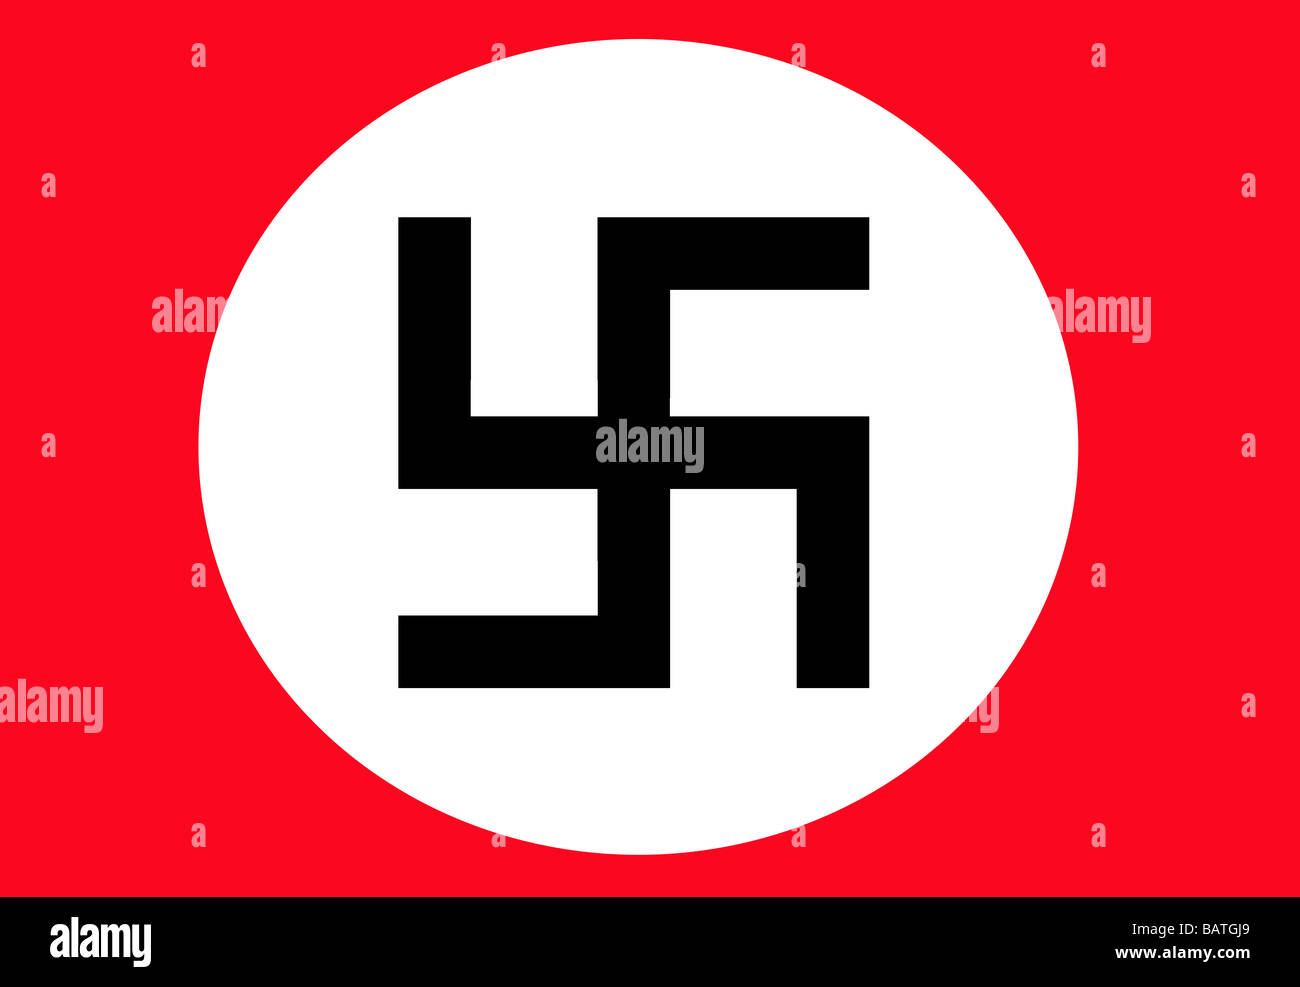 Illustration of black Swastika in white circle on red background - Stock Image